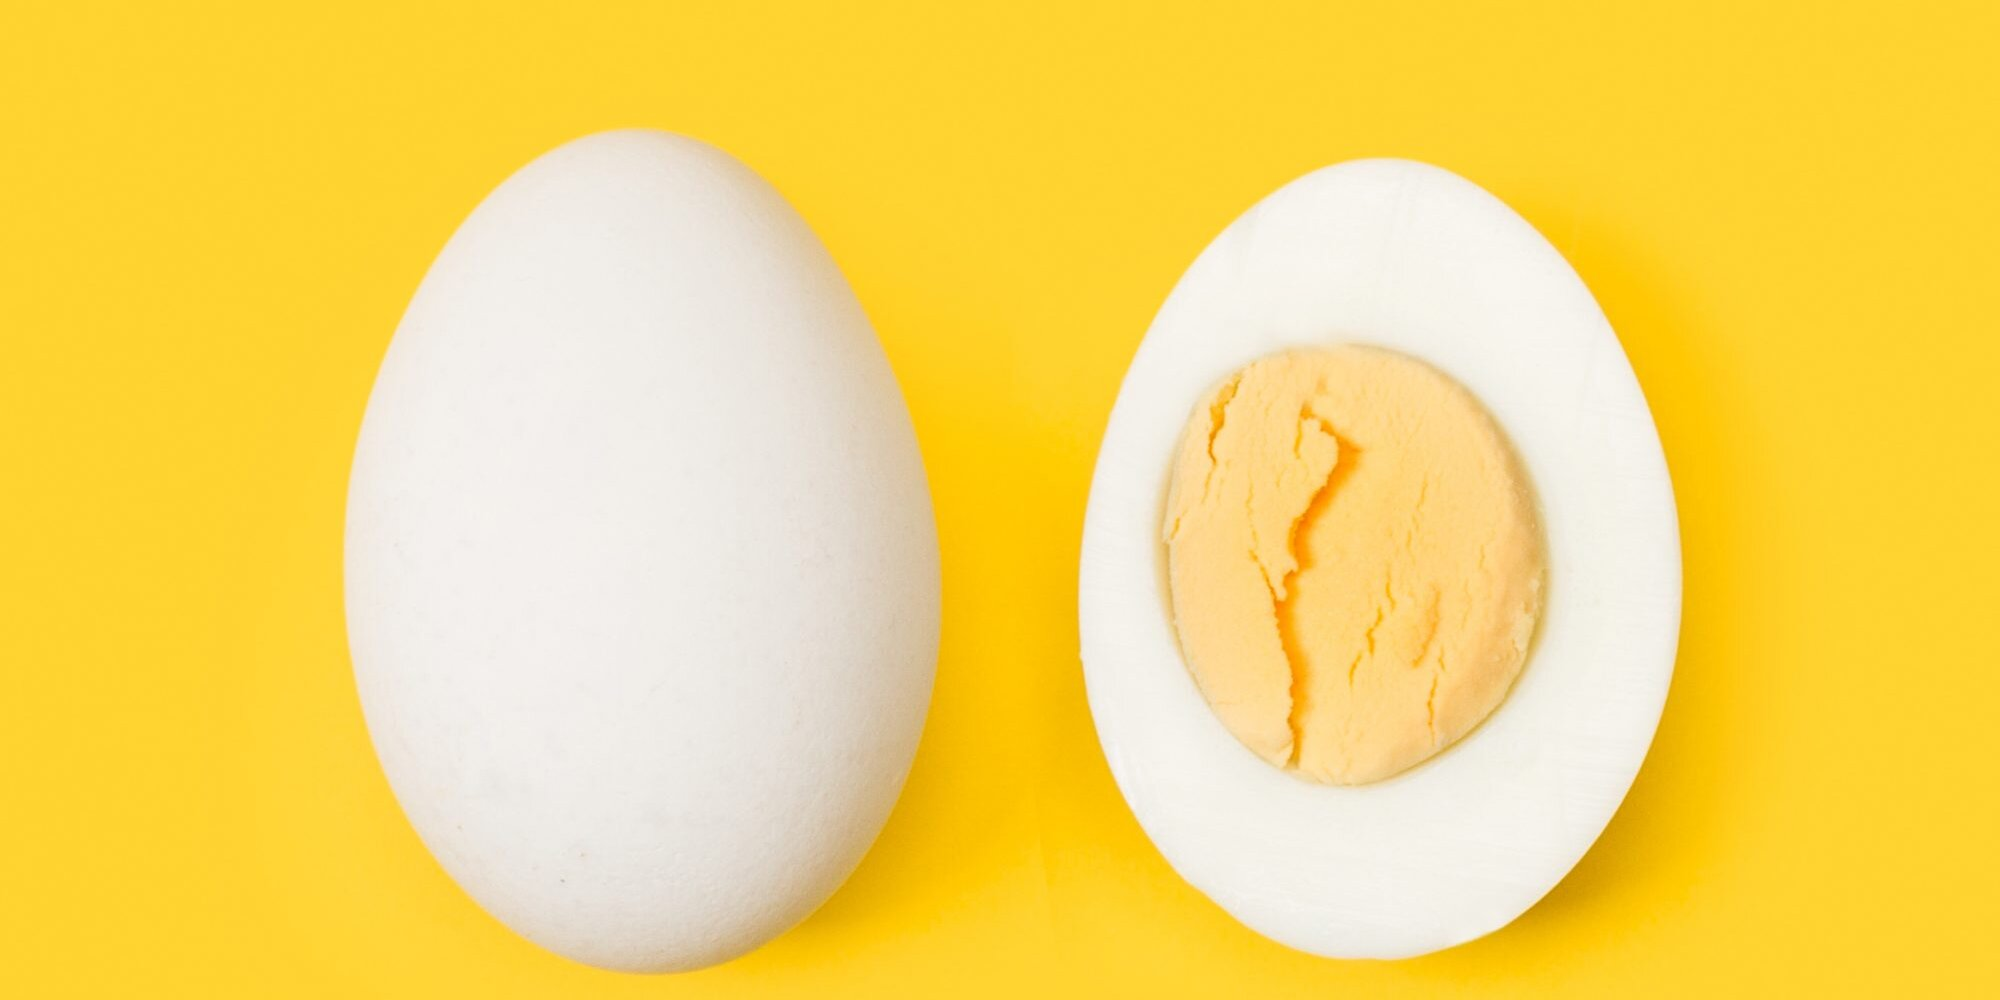 9 Ways to Use Hard-Boiled Eggs (That Don't Involve Egg Salad)